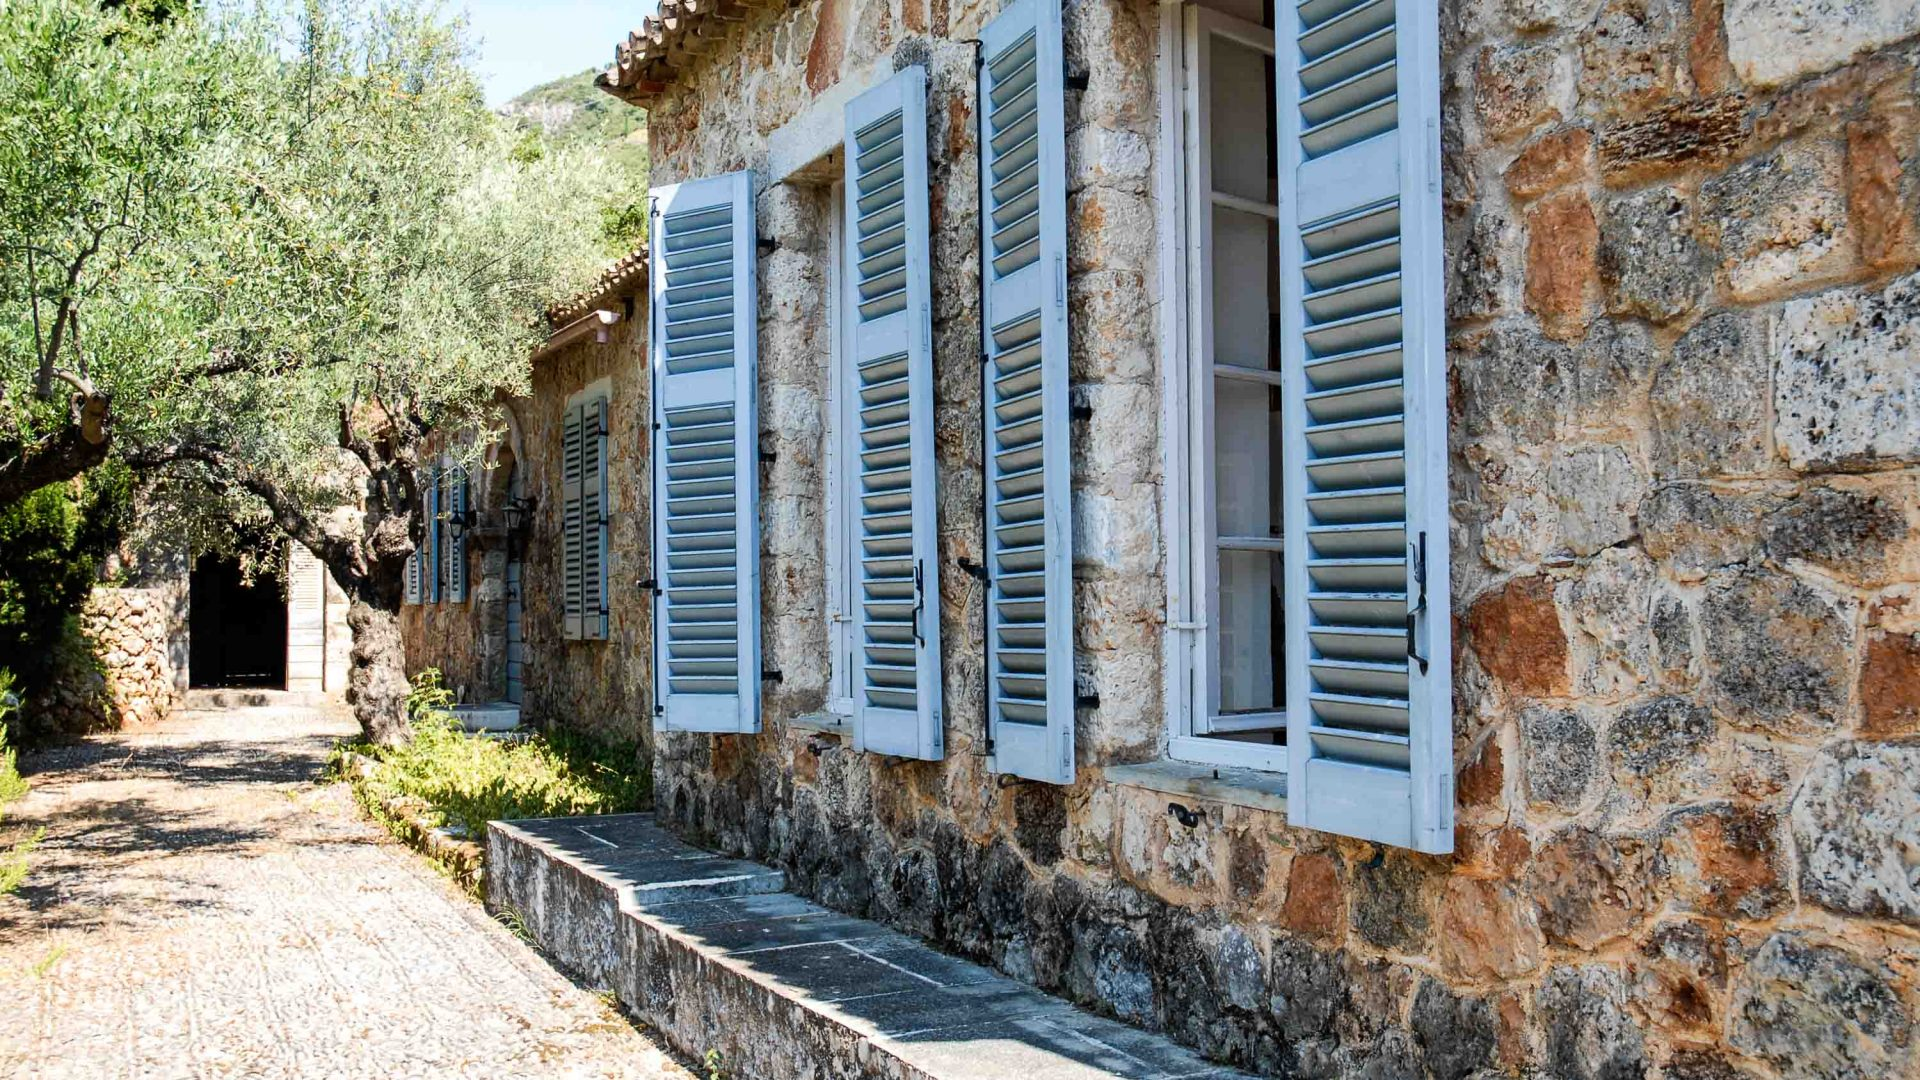 Pretty blue shutters at the home of travel writer Patrick Leigh Fermor in the Mani Peninsula, Greece.